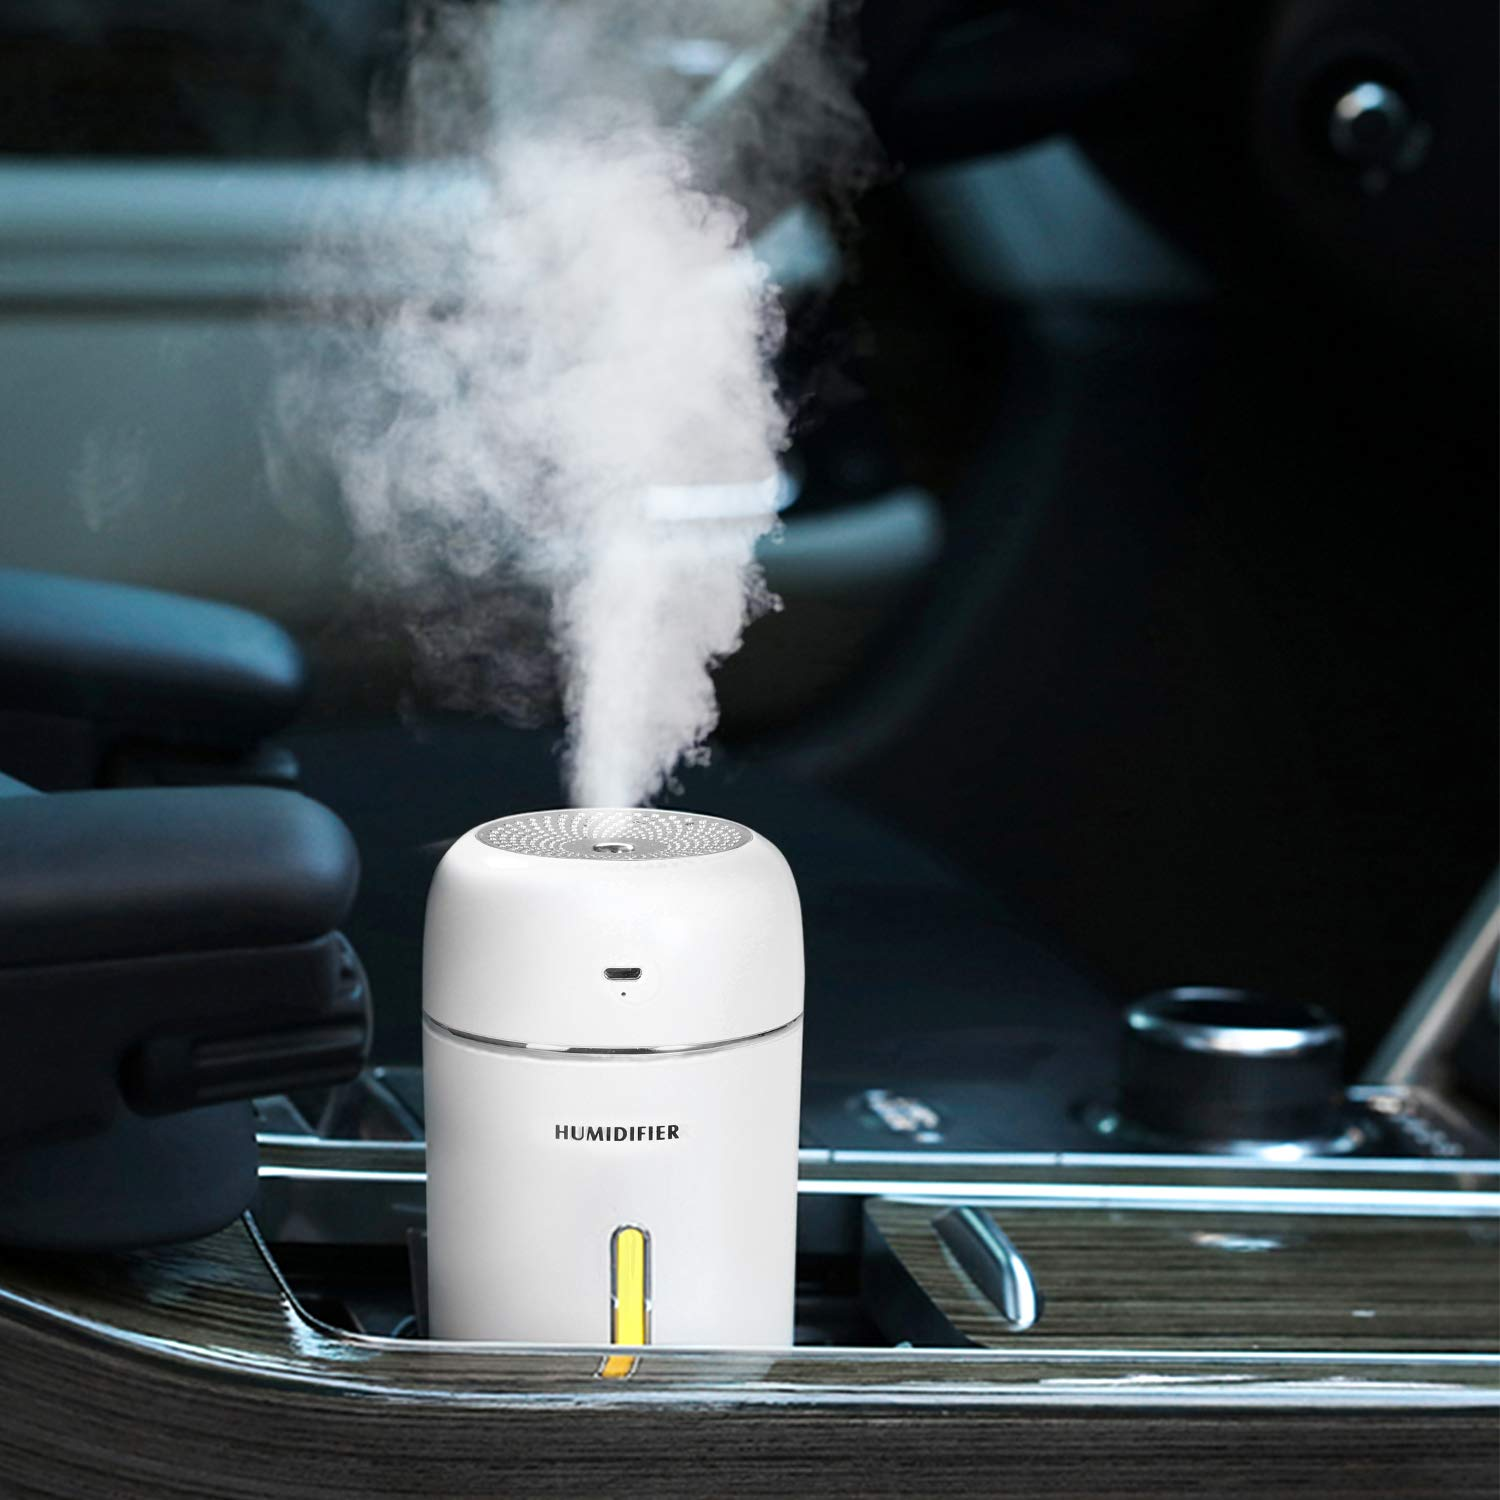 Humidifiers,Mini Humidifier, 280ML Small Cool Mist Humidifier, Car Humidifier Baby Humidifier for Baby Bedroom Travel Office Home, Auto Shut-Off, 2 Mist Modes, Super Quiet, Lasts Up to 9 Hours,White